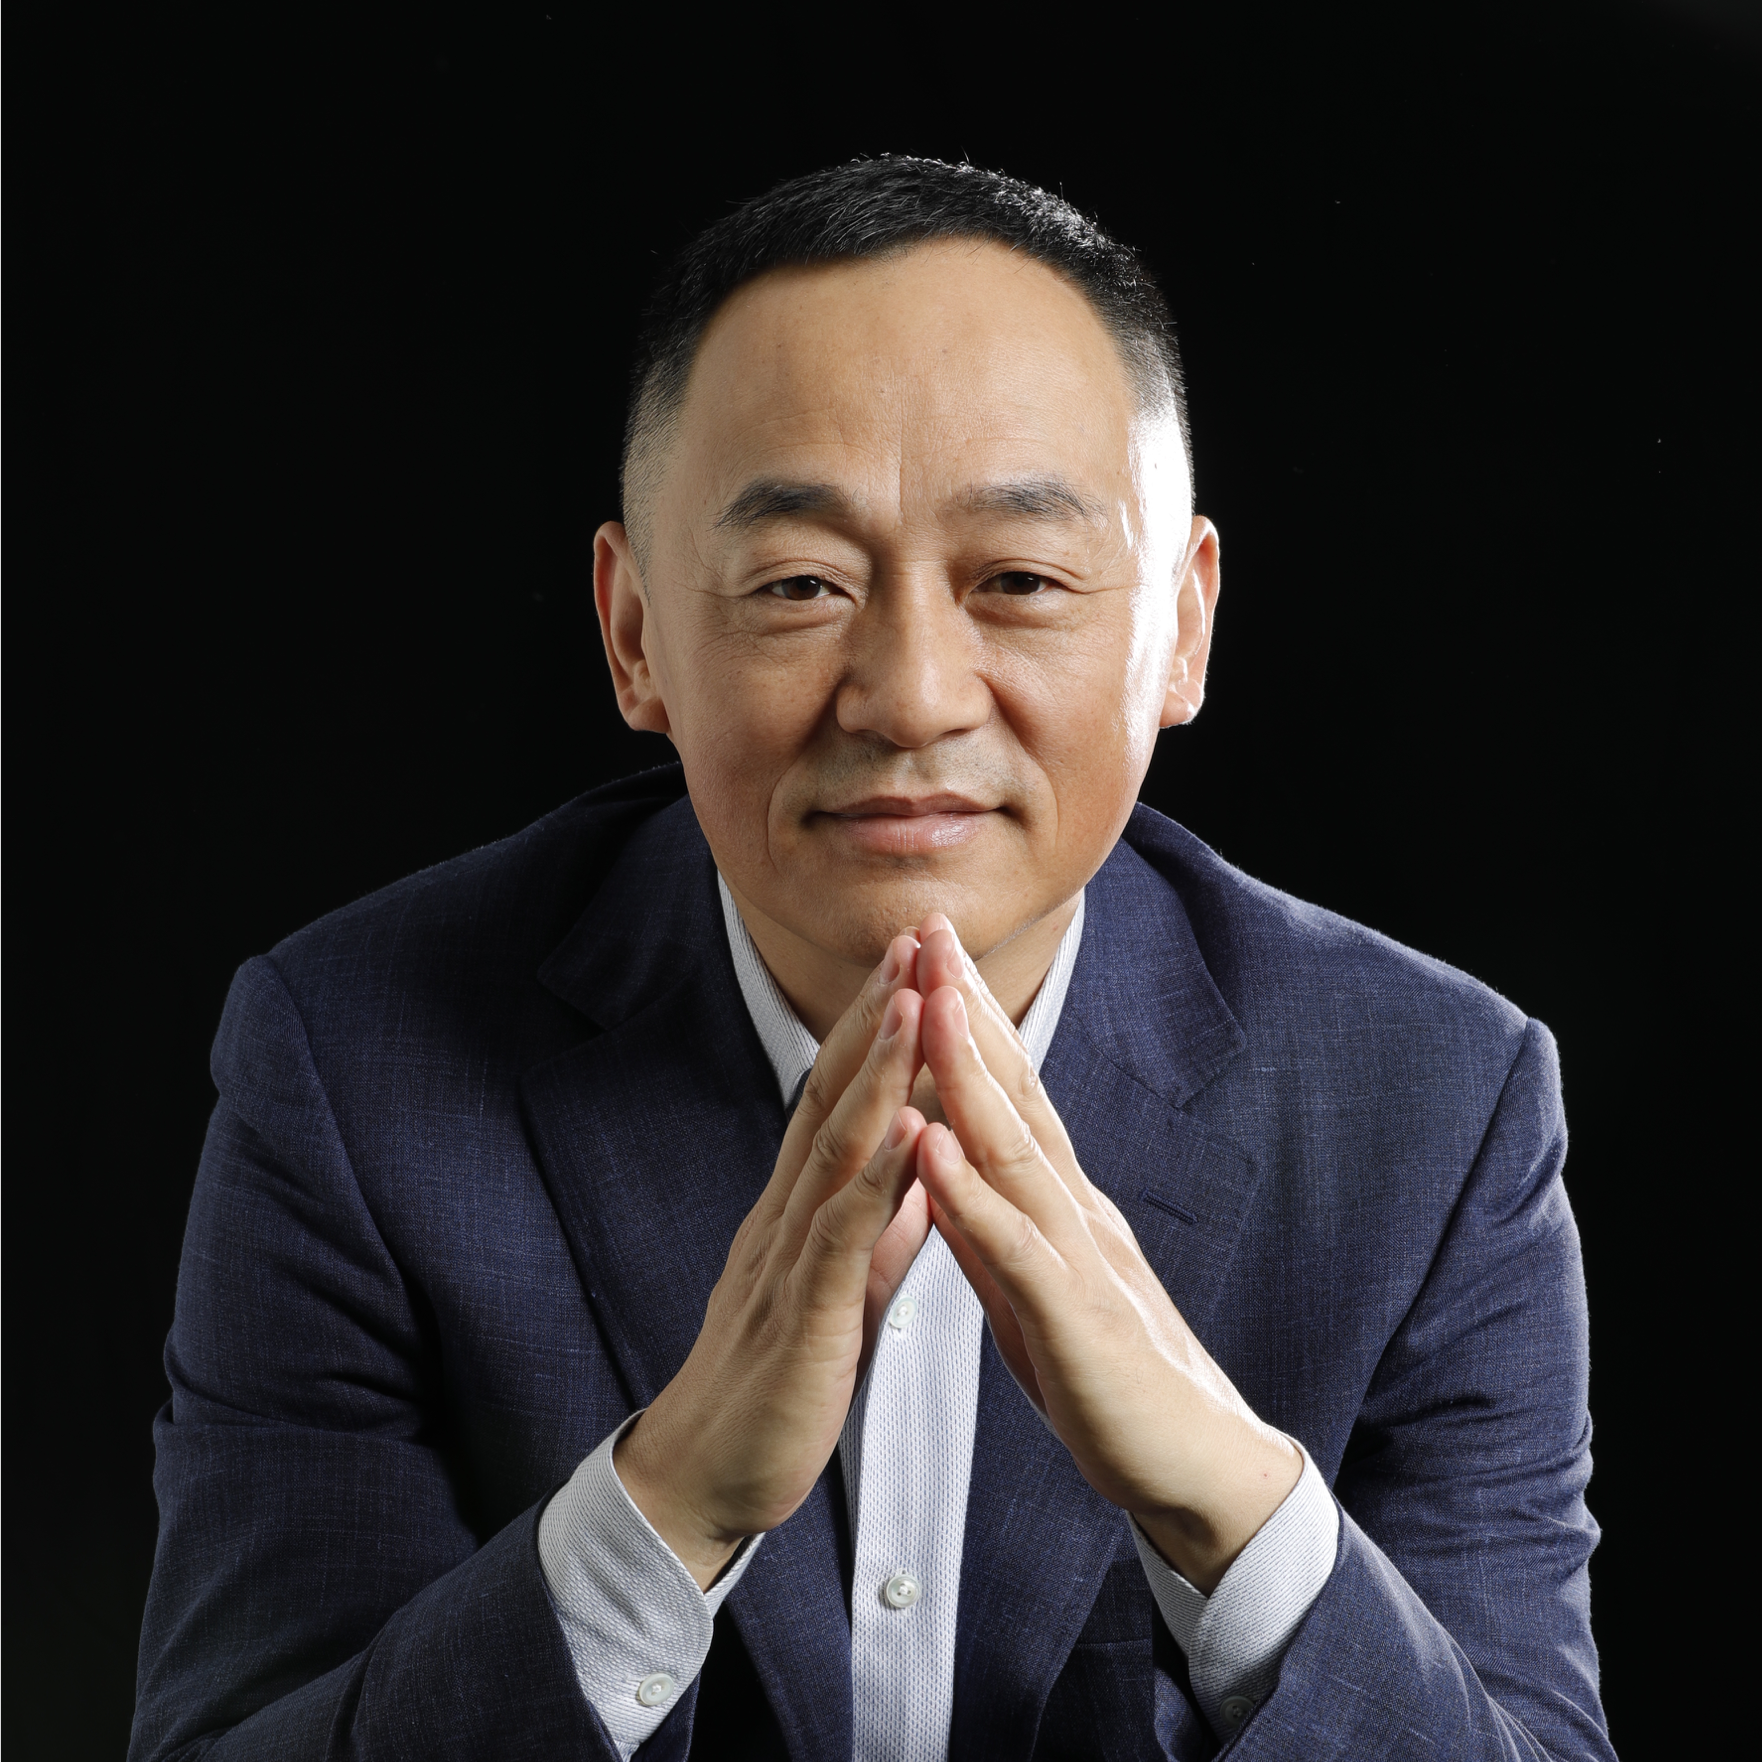 Xiao Feng  Chairman,  HashKey Group    Vice Chairman and Executive Director of China Wanxiang Holding, Chairman and CEO of Wanxiang Blockchain, 25 years of experience in the securities and asset management industry. Founder and General Manager of Bosera Asset Management.